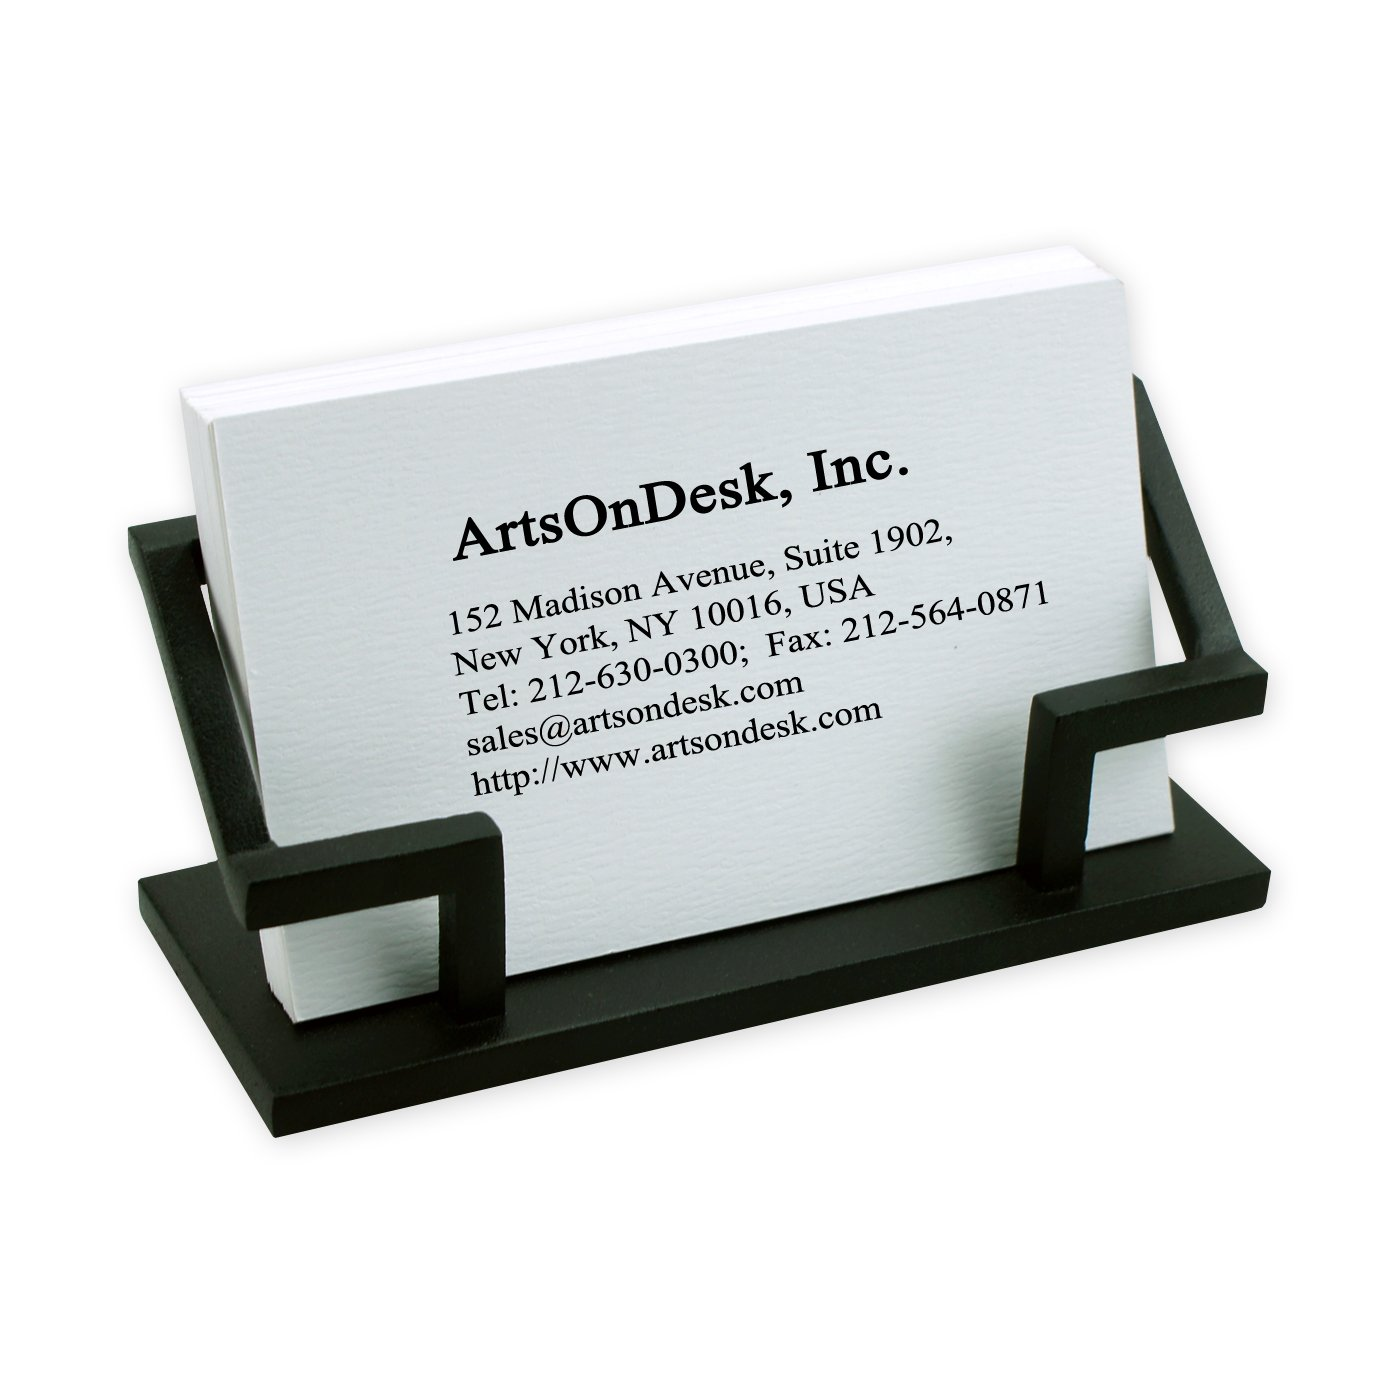 ArtsOnDesk Modern Art Business Card Holder Bk301 Steel Black Patented Desk Accessory Name Card Stand Case Plate Display Office Organizer Christmas Gift Holiday Valentines Day Graduation Present